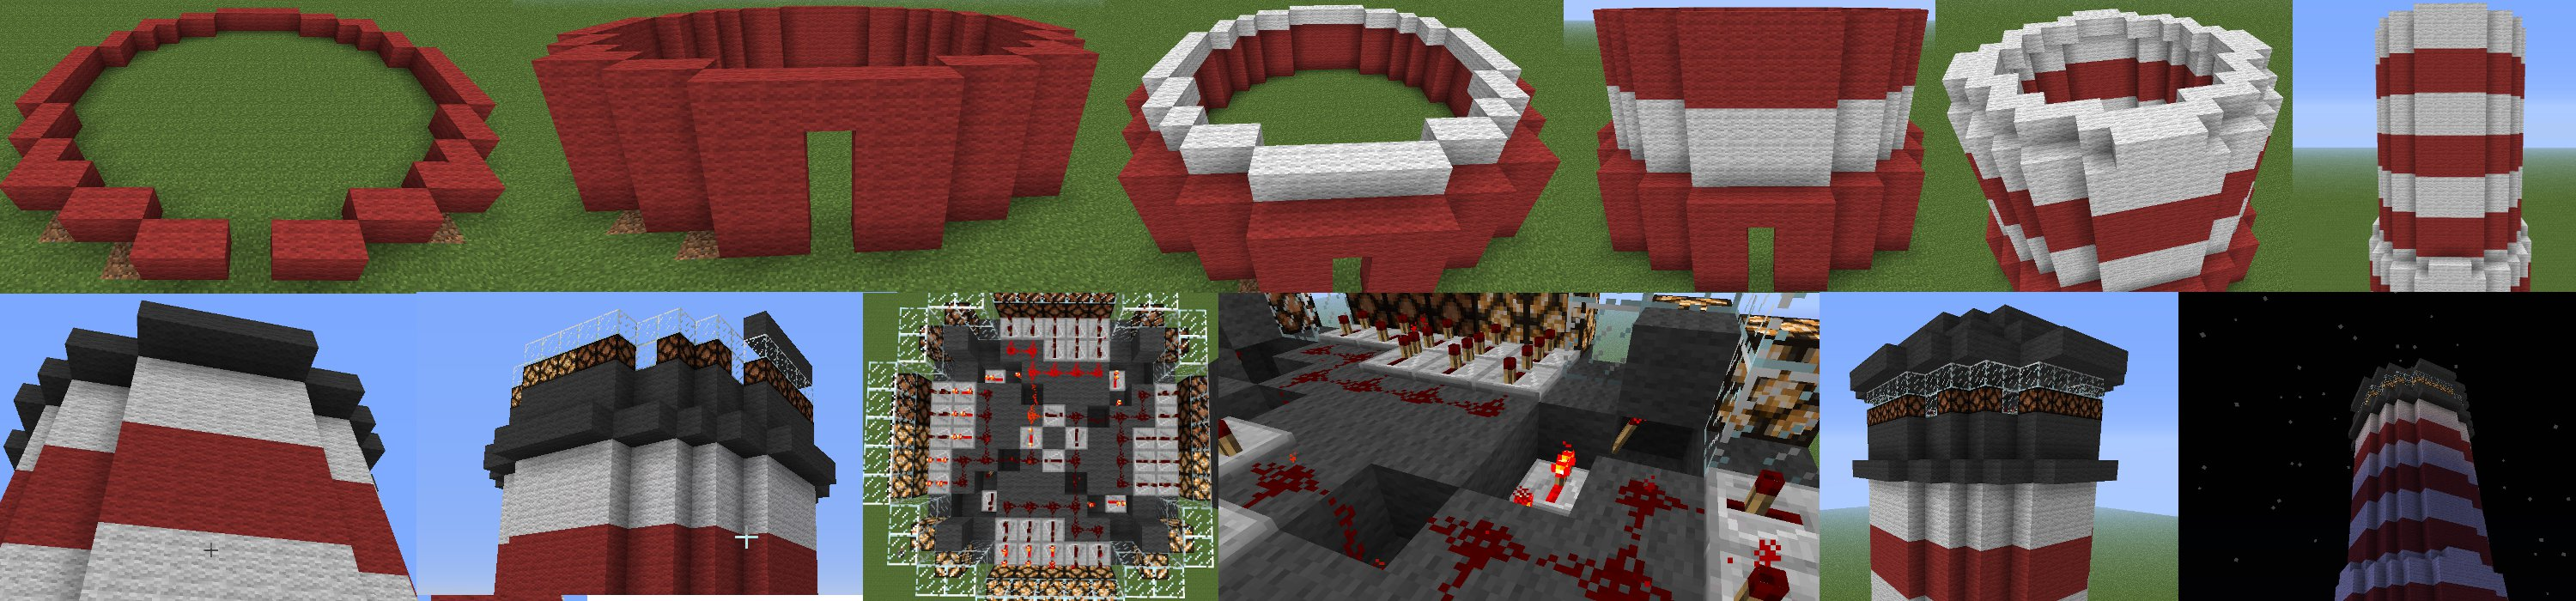 How To Build An Automatic Lighthouse Minecraft Guides Redstone Circuits Light Mechanisms